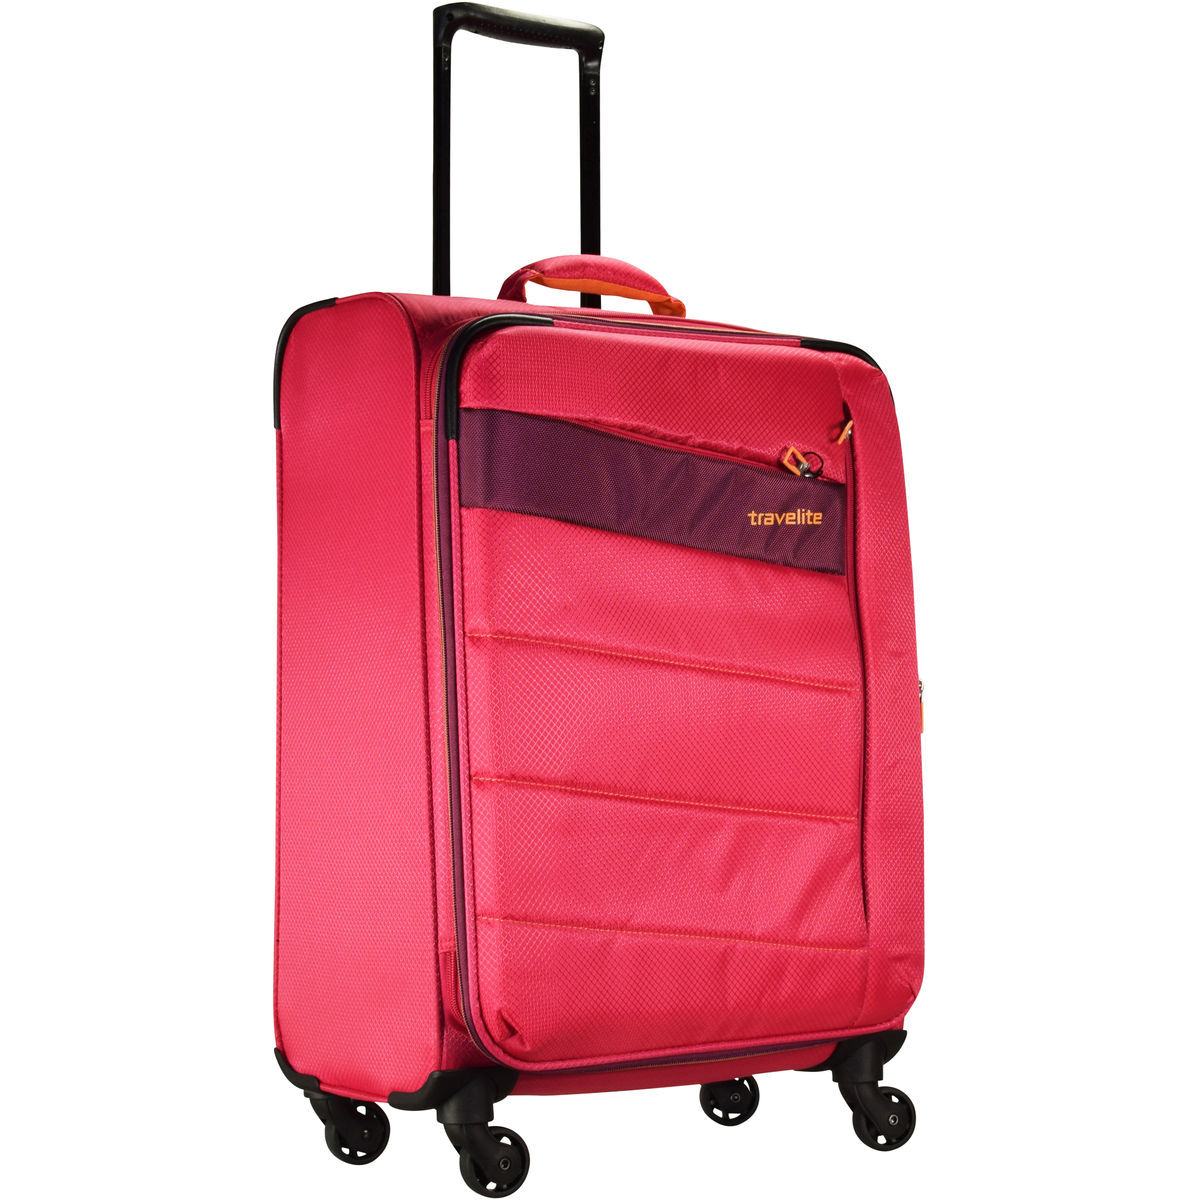 travelite kite 4 rollen kofferset 4tlg pink karstadt. Black Bedroom Furniture Sets. Home Design Ideas